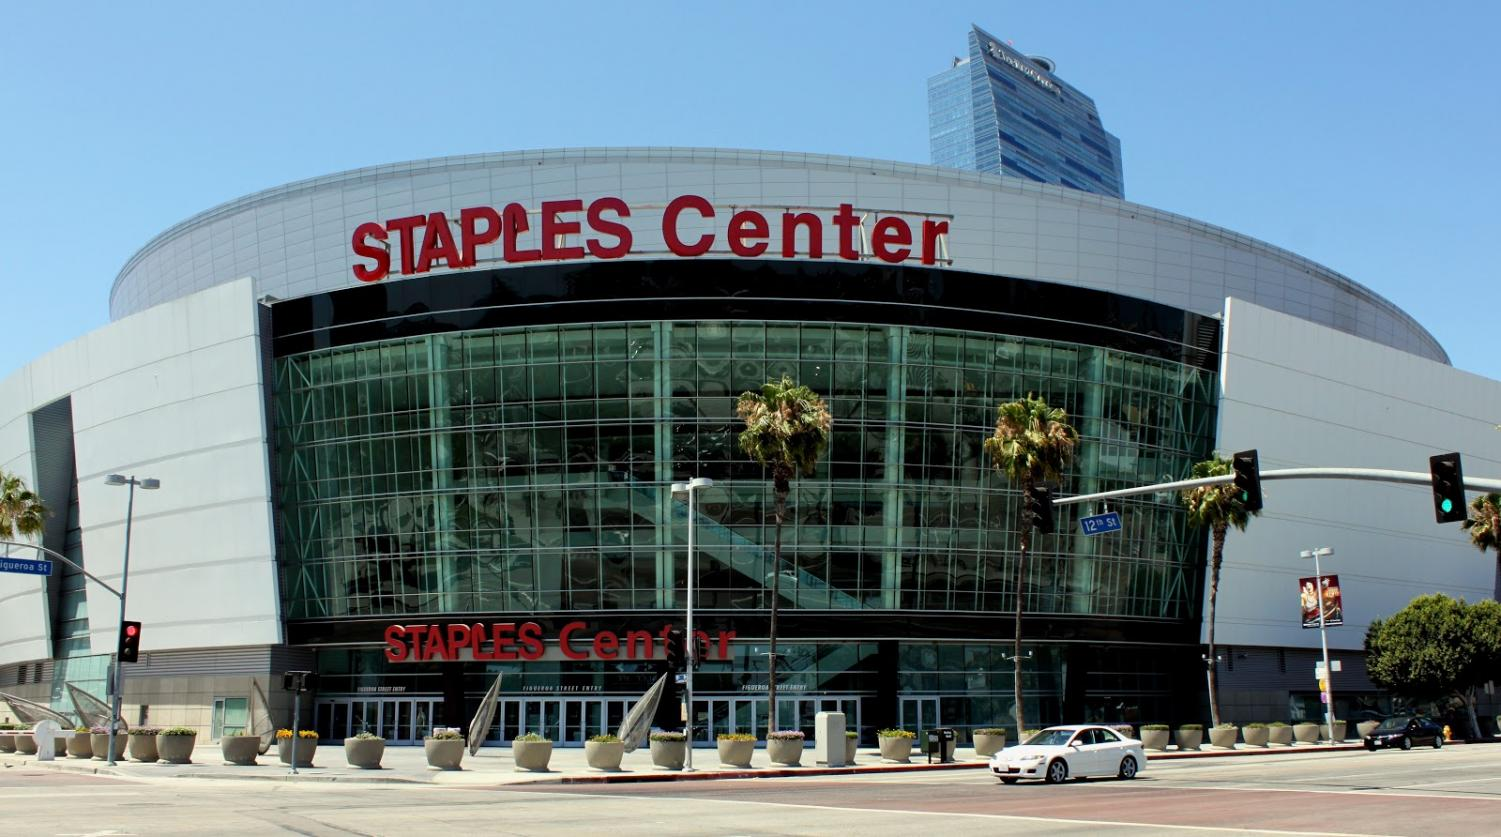 Home to the Clippers and Lakers, the Staples Center will host many battles between the two teams. The road to NBA glory will most likely go through Los Angeles this season.